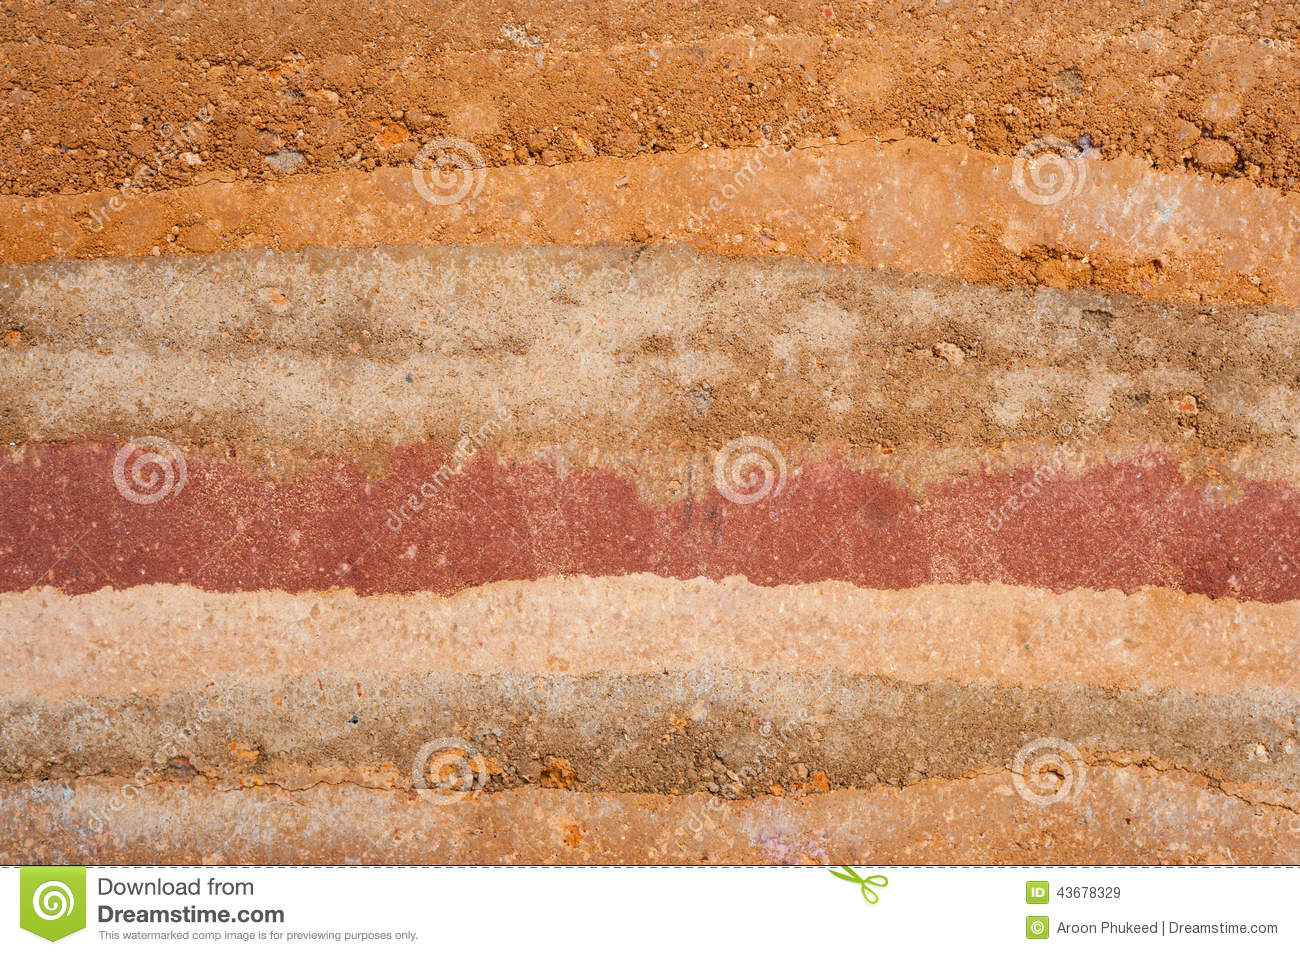 Texture layers of earth stock image image of nature for Earth soil layers